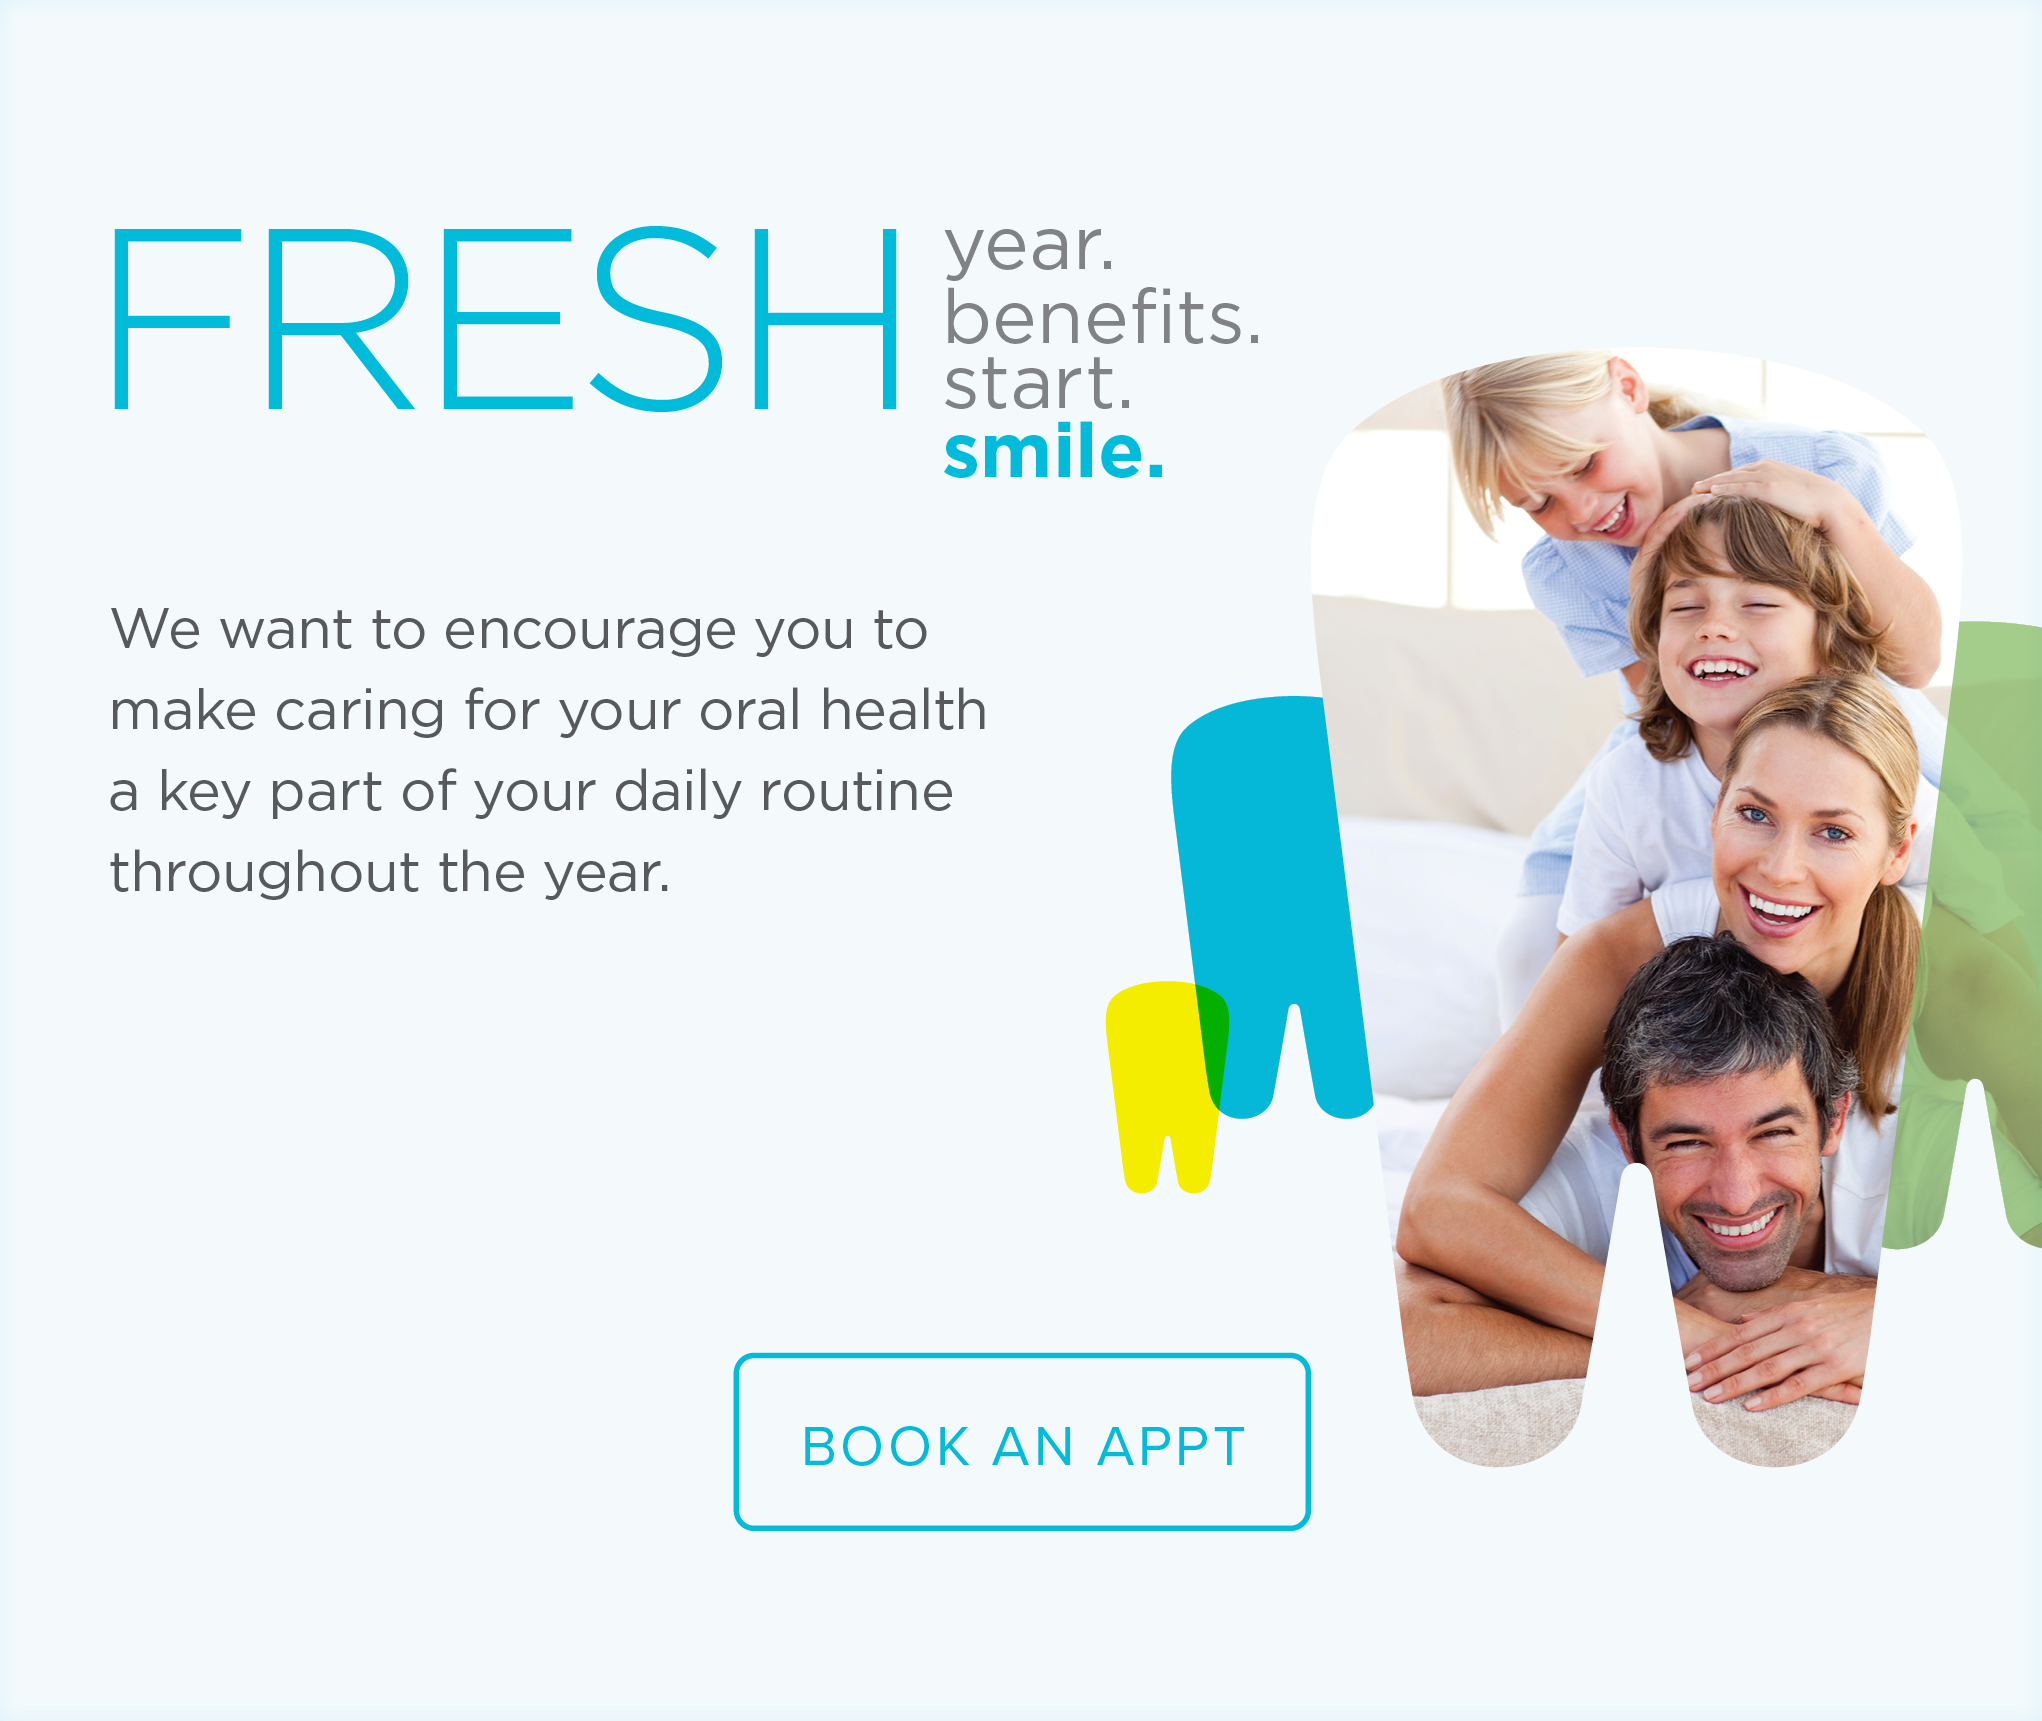 Lakewood Modern Dentistry - Make the Most of Your Benefits